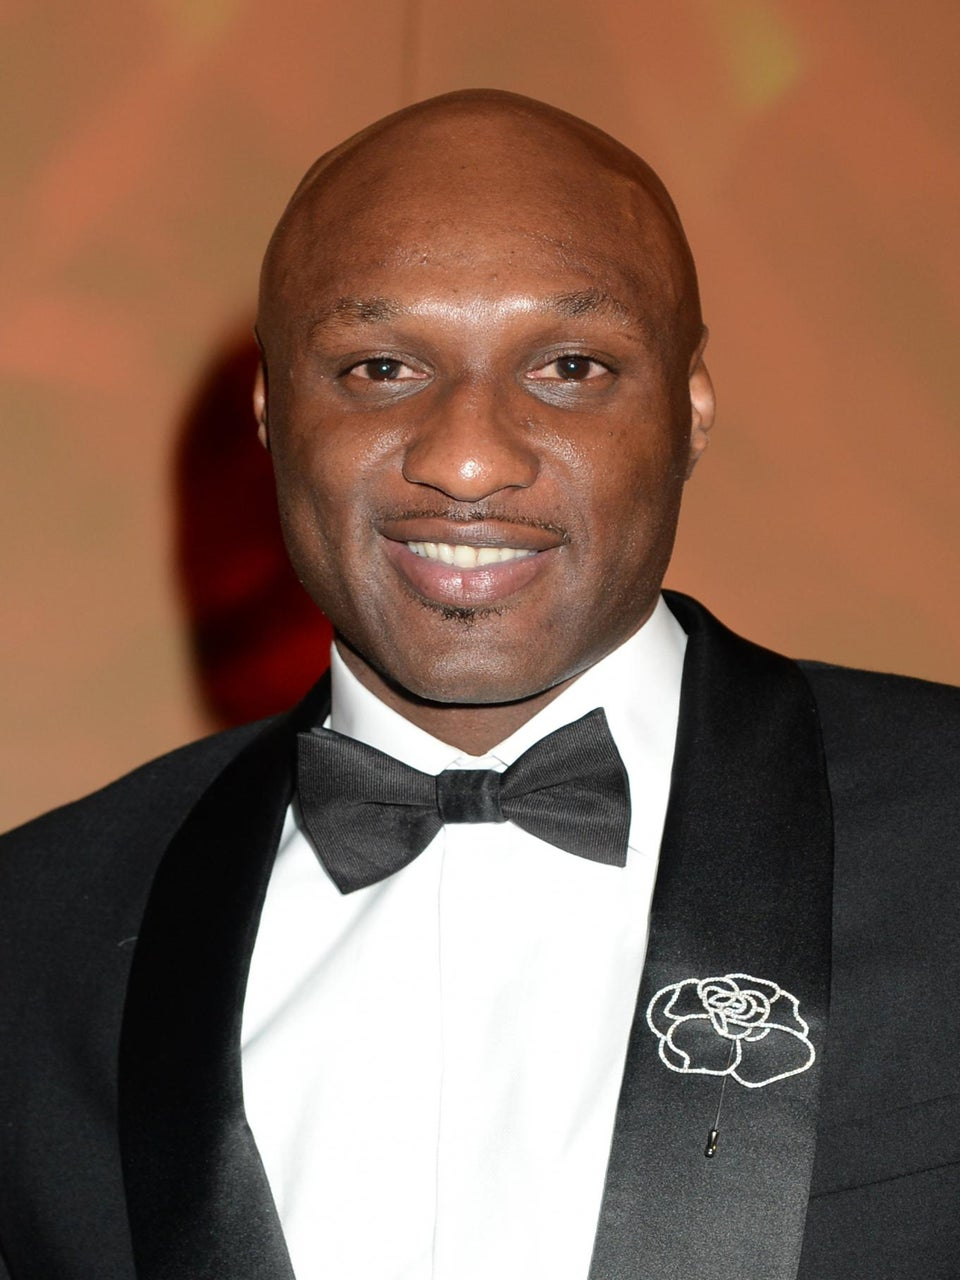 Lamar Odom in Stable Condition, Transferred to Los Angeles Hospital